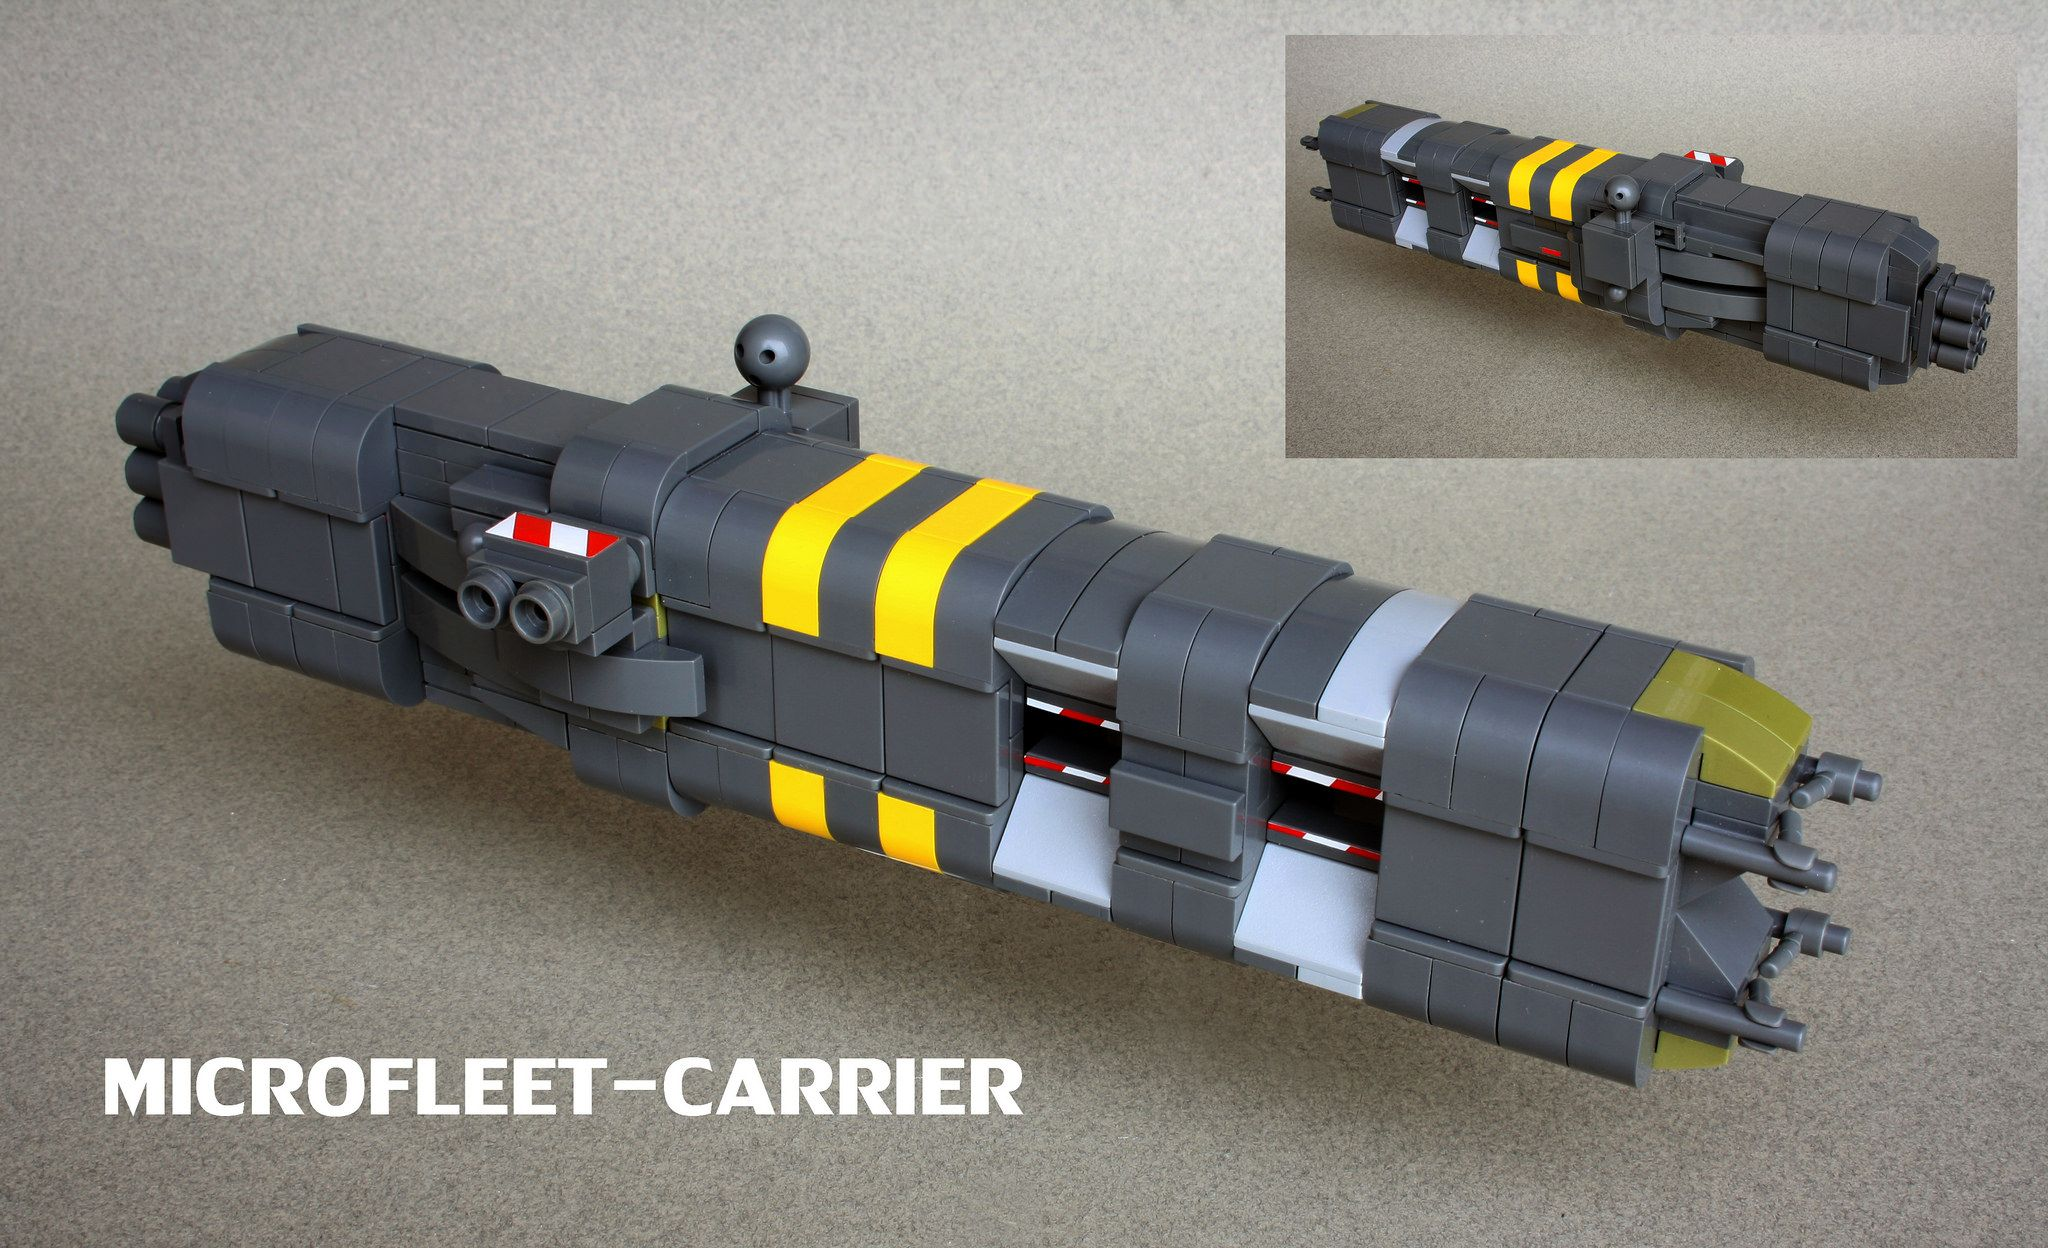 https://flic.kr/p/BDyZu8 | MICROFLEET-Carrier